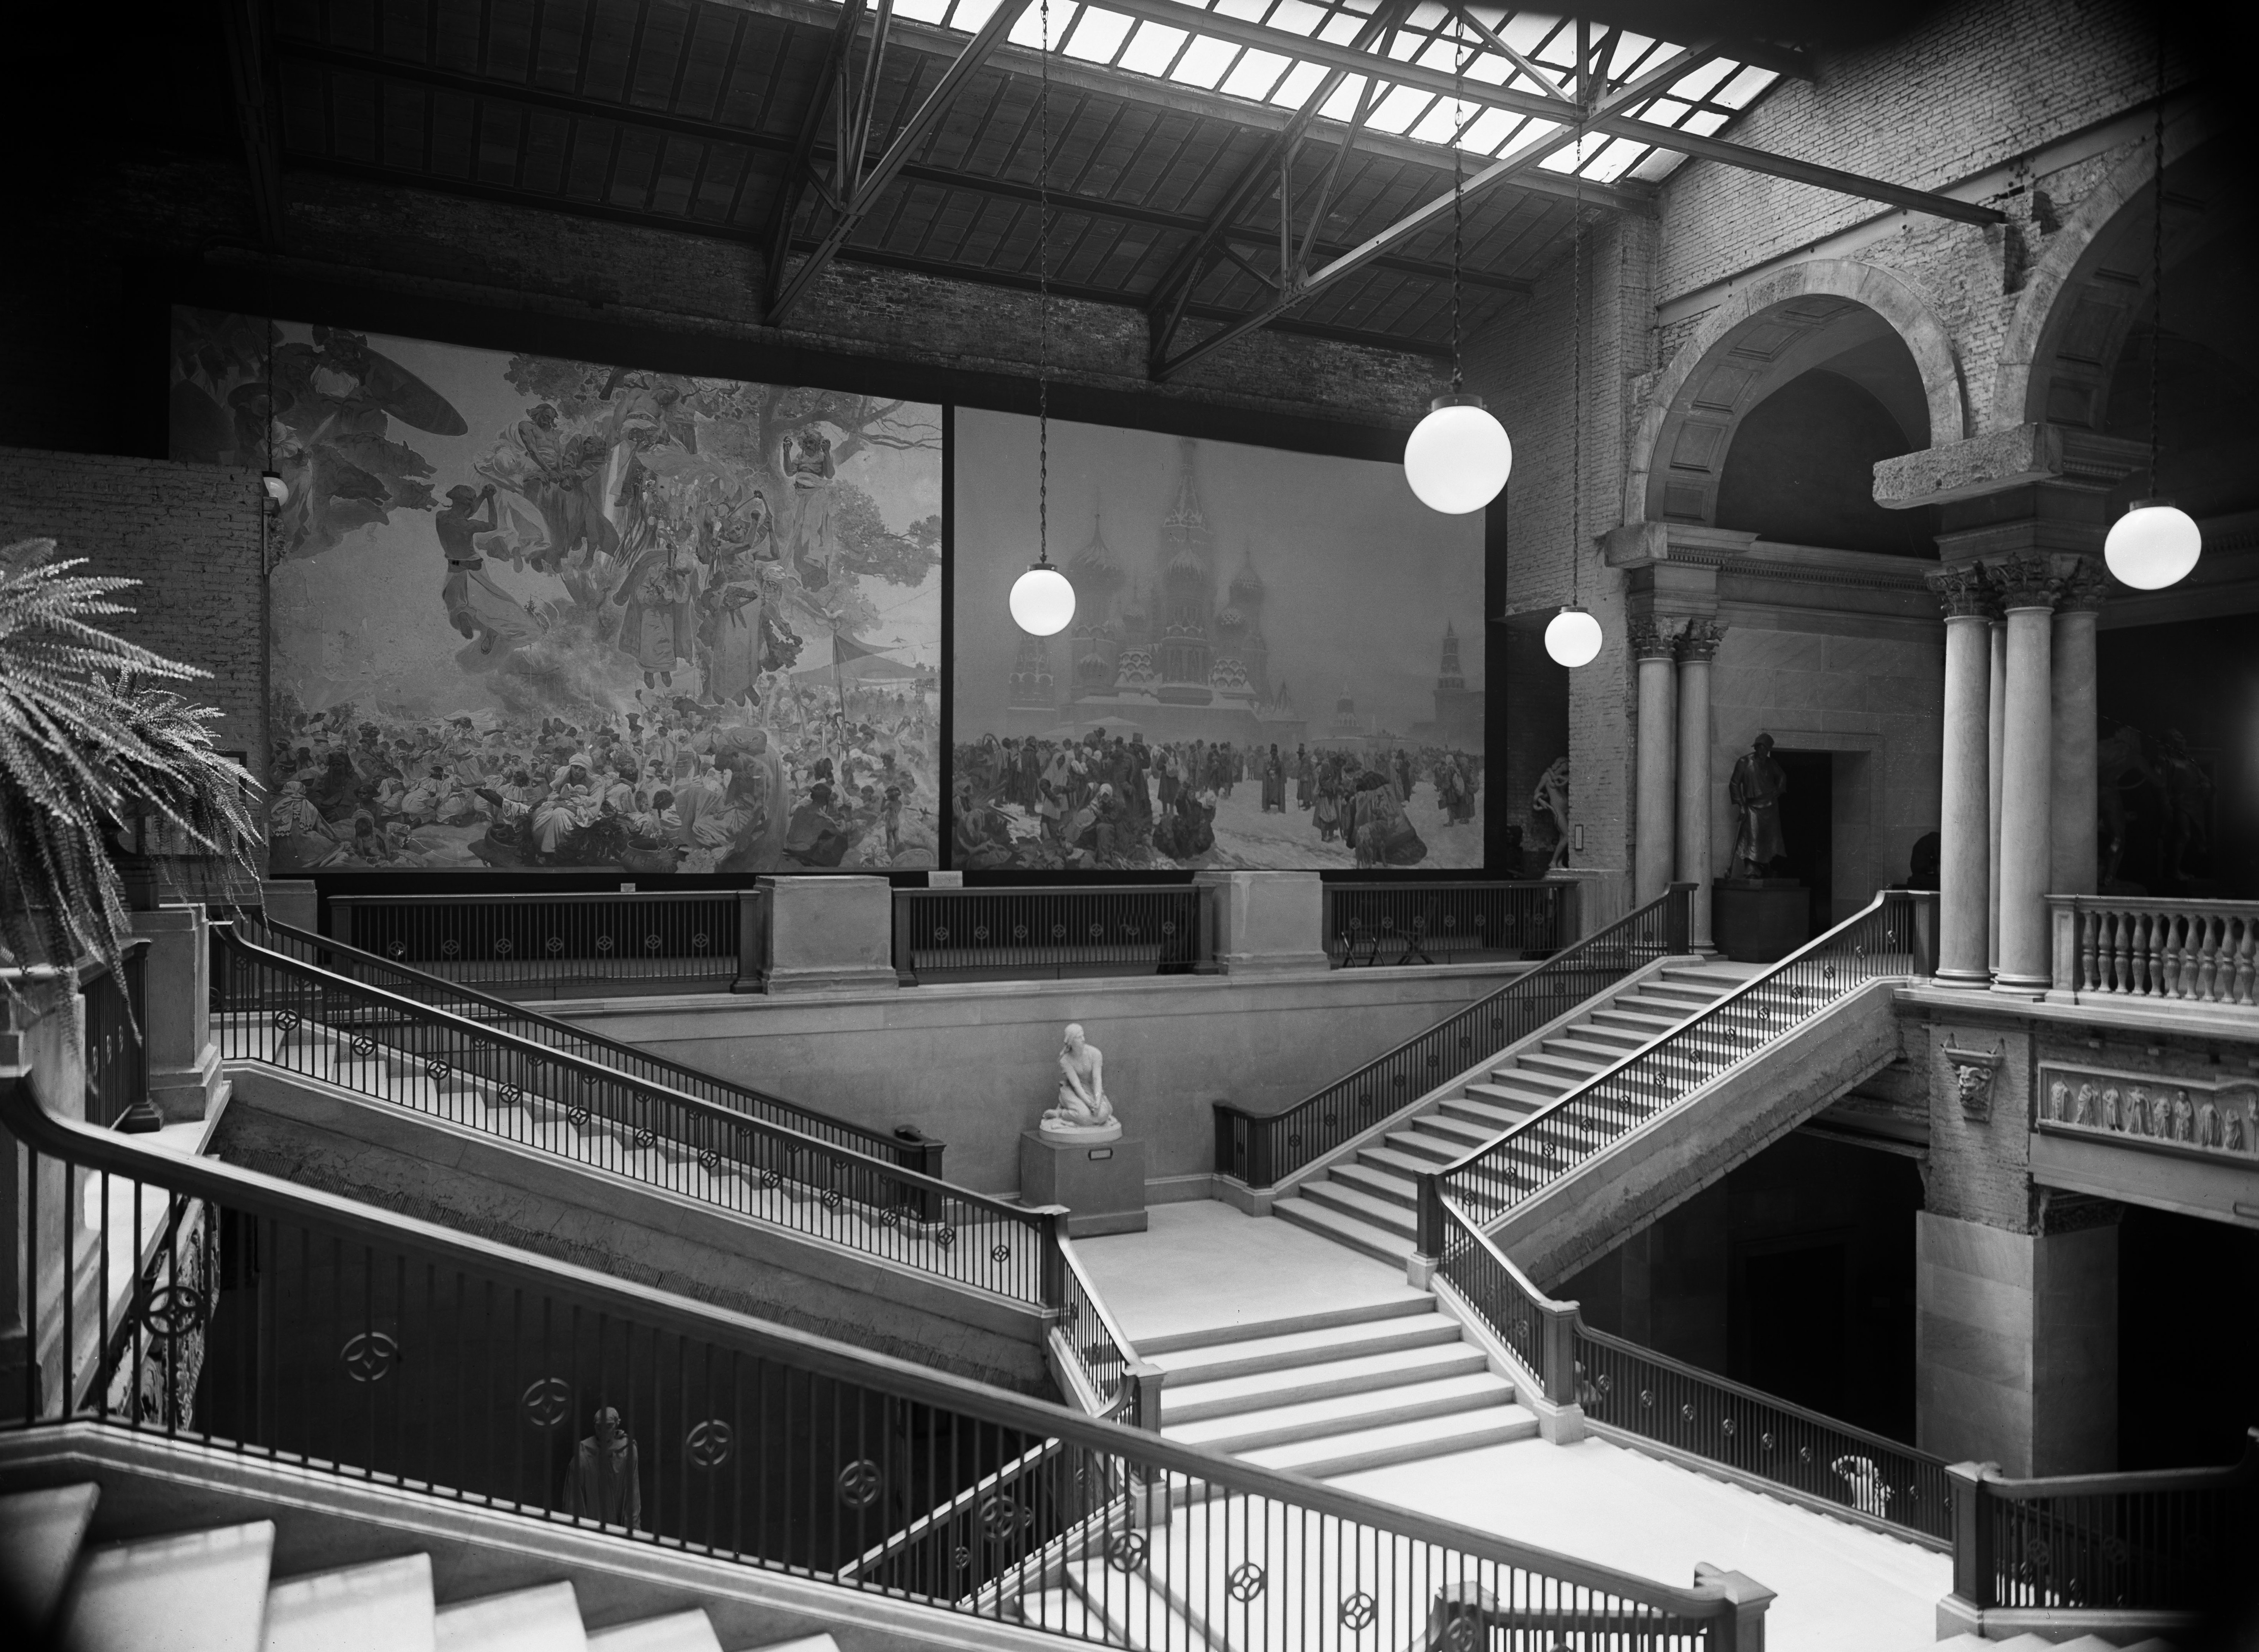 Archival image of the grand staircase